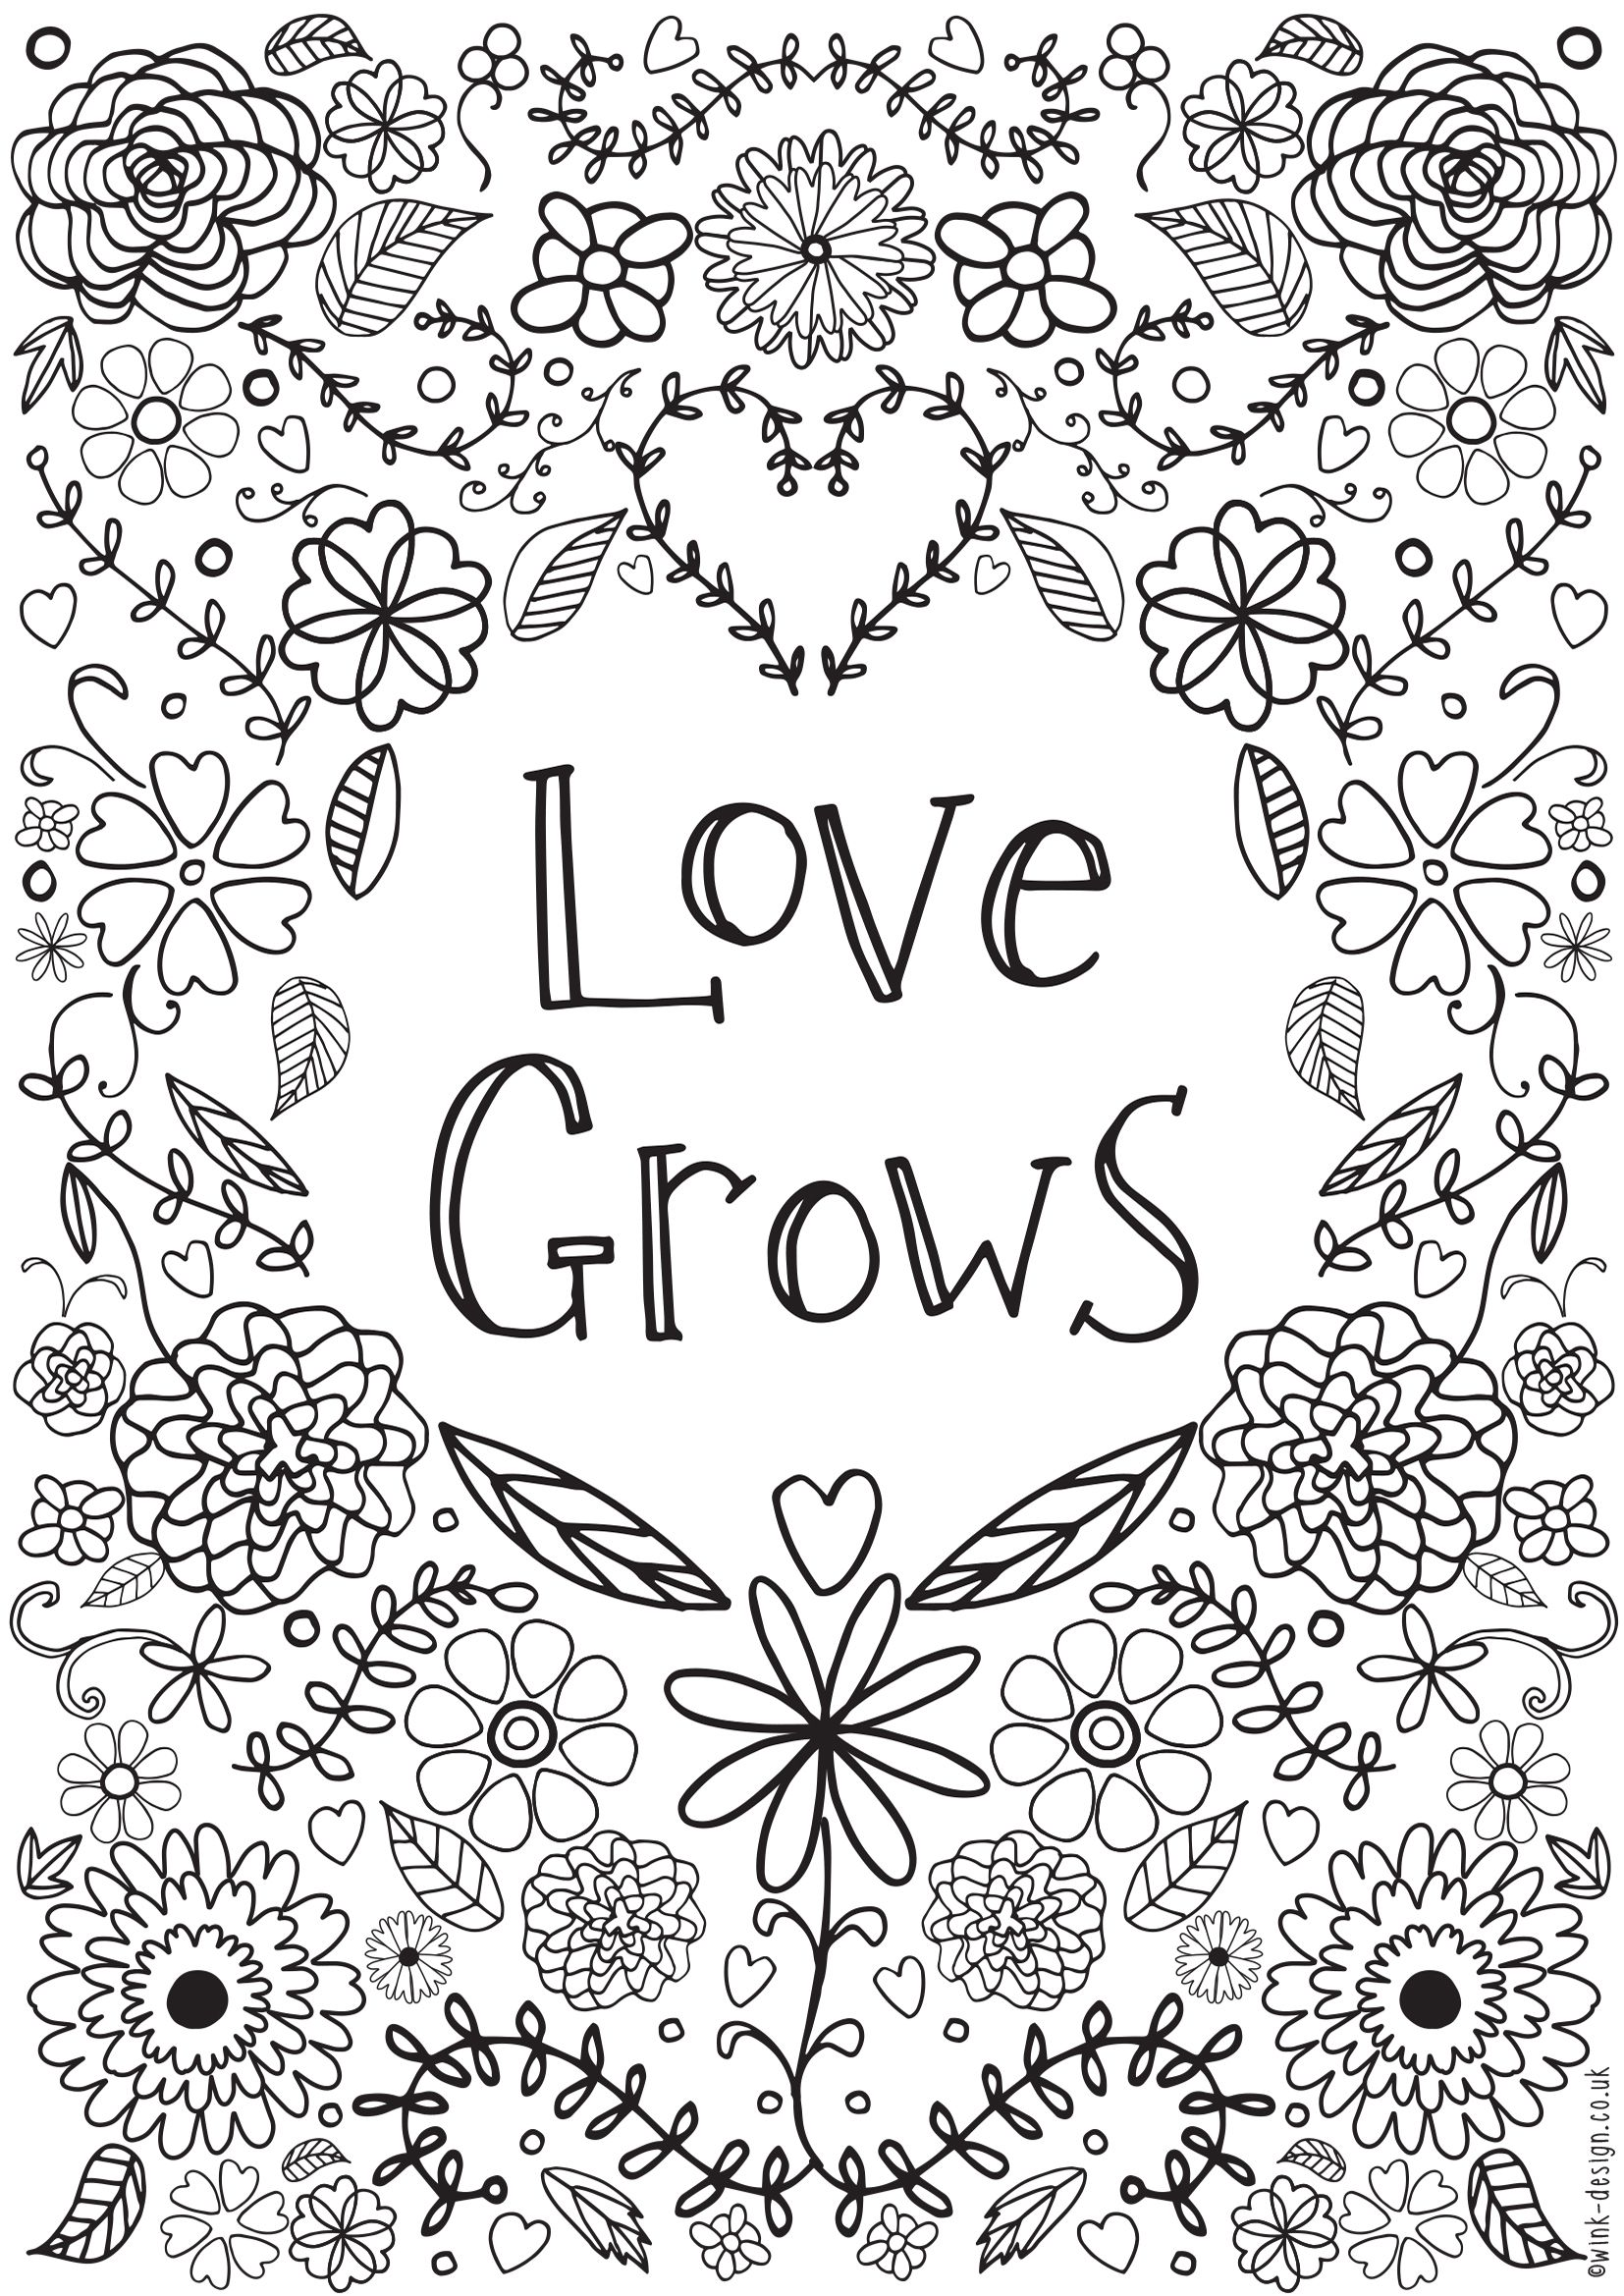 Love Grows Doodle Art Coloring Page